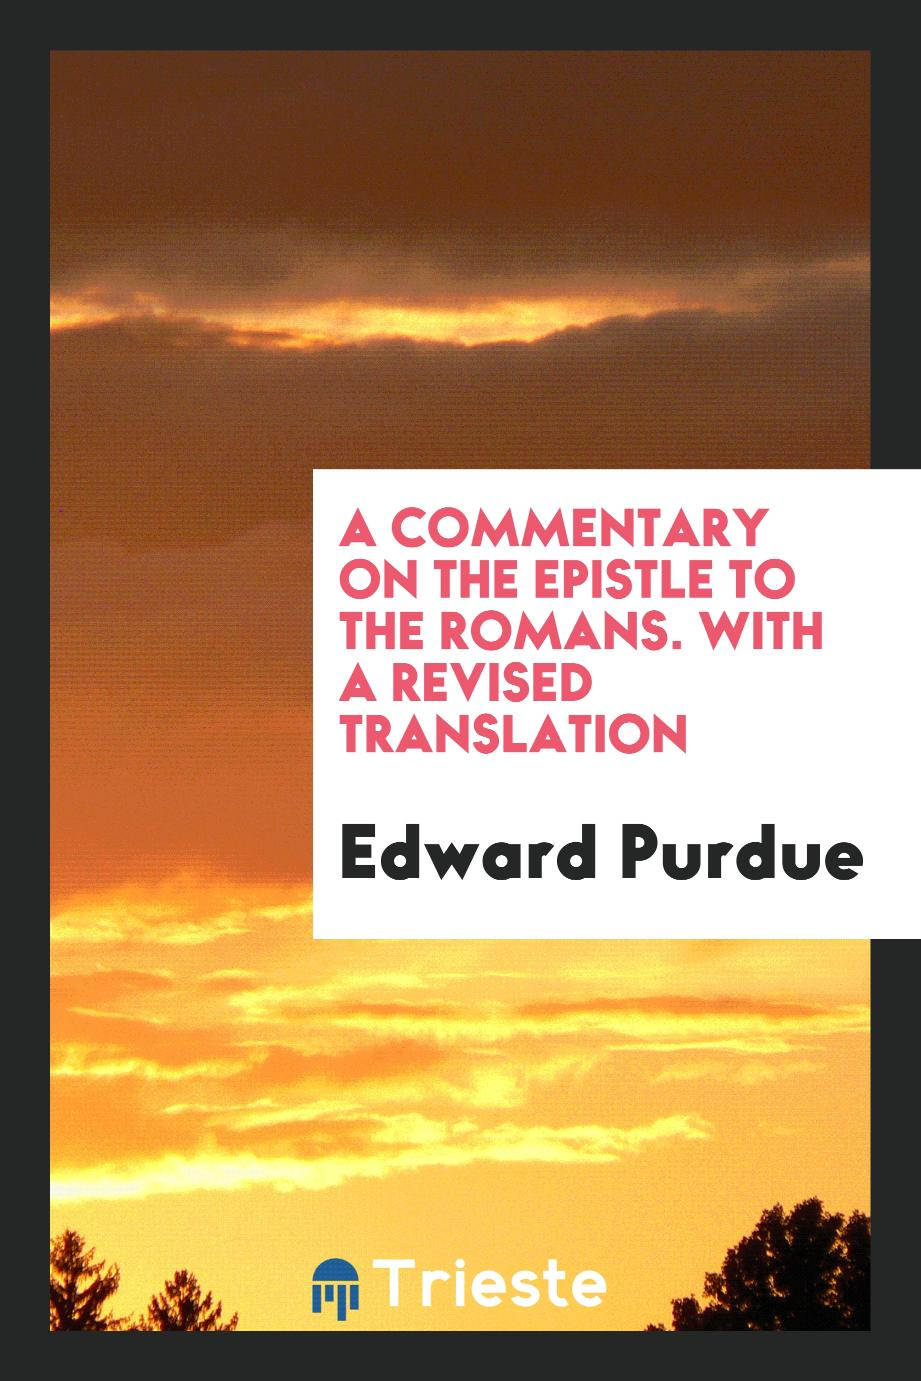 A Commentary on the Epistle to the Romans. With a Revised Translation